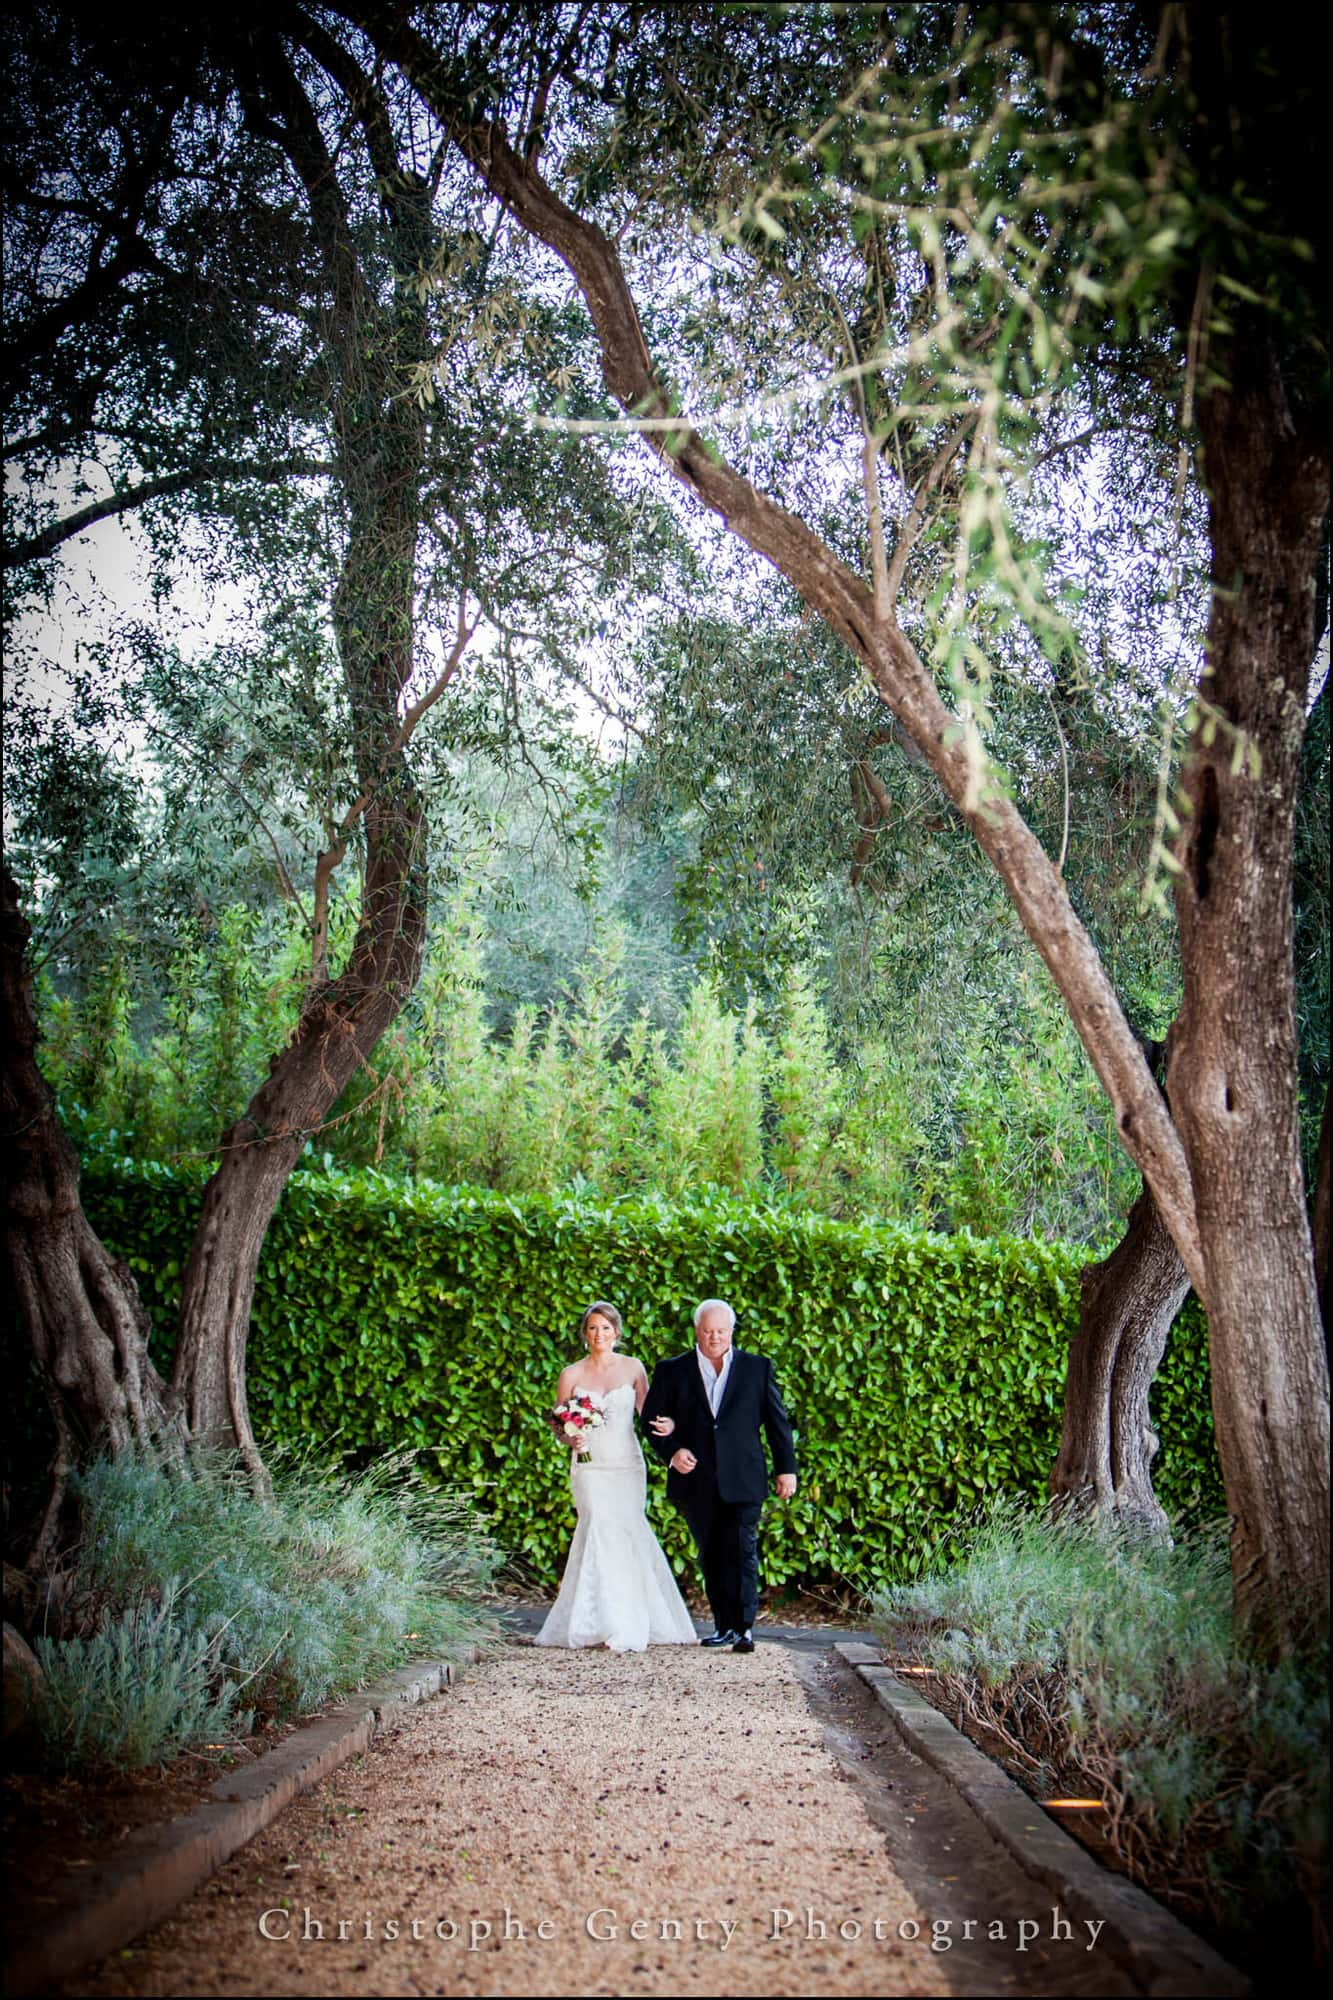 Wedding photography in the napa valley anne marie kenny for Napa wedding photographer